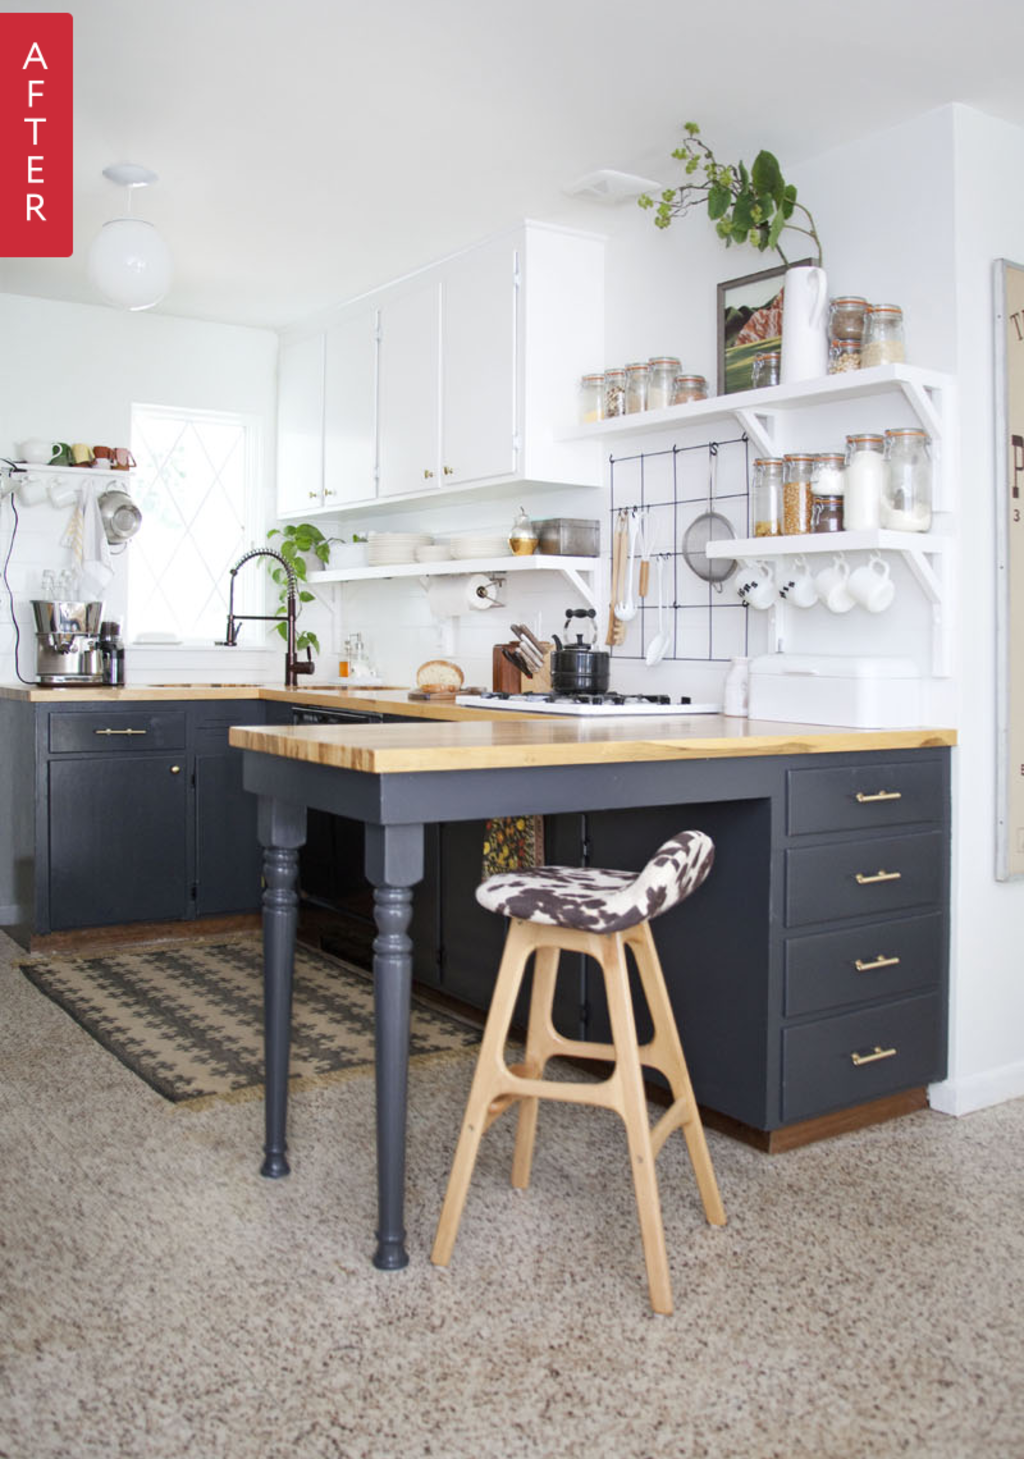 These Kitchen Transformations Are Amazing — And Affordable